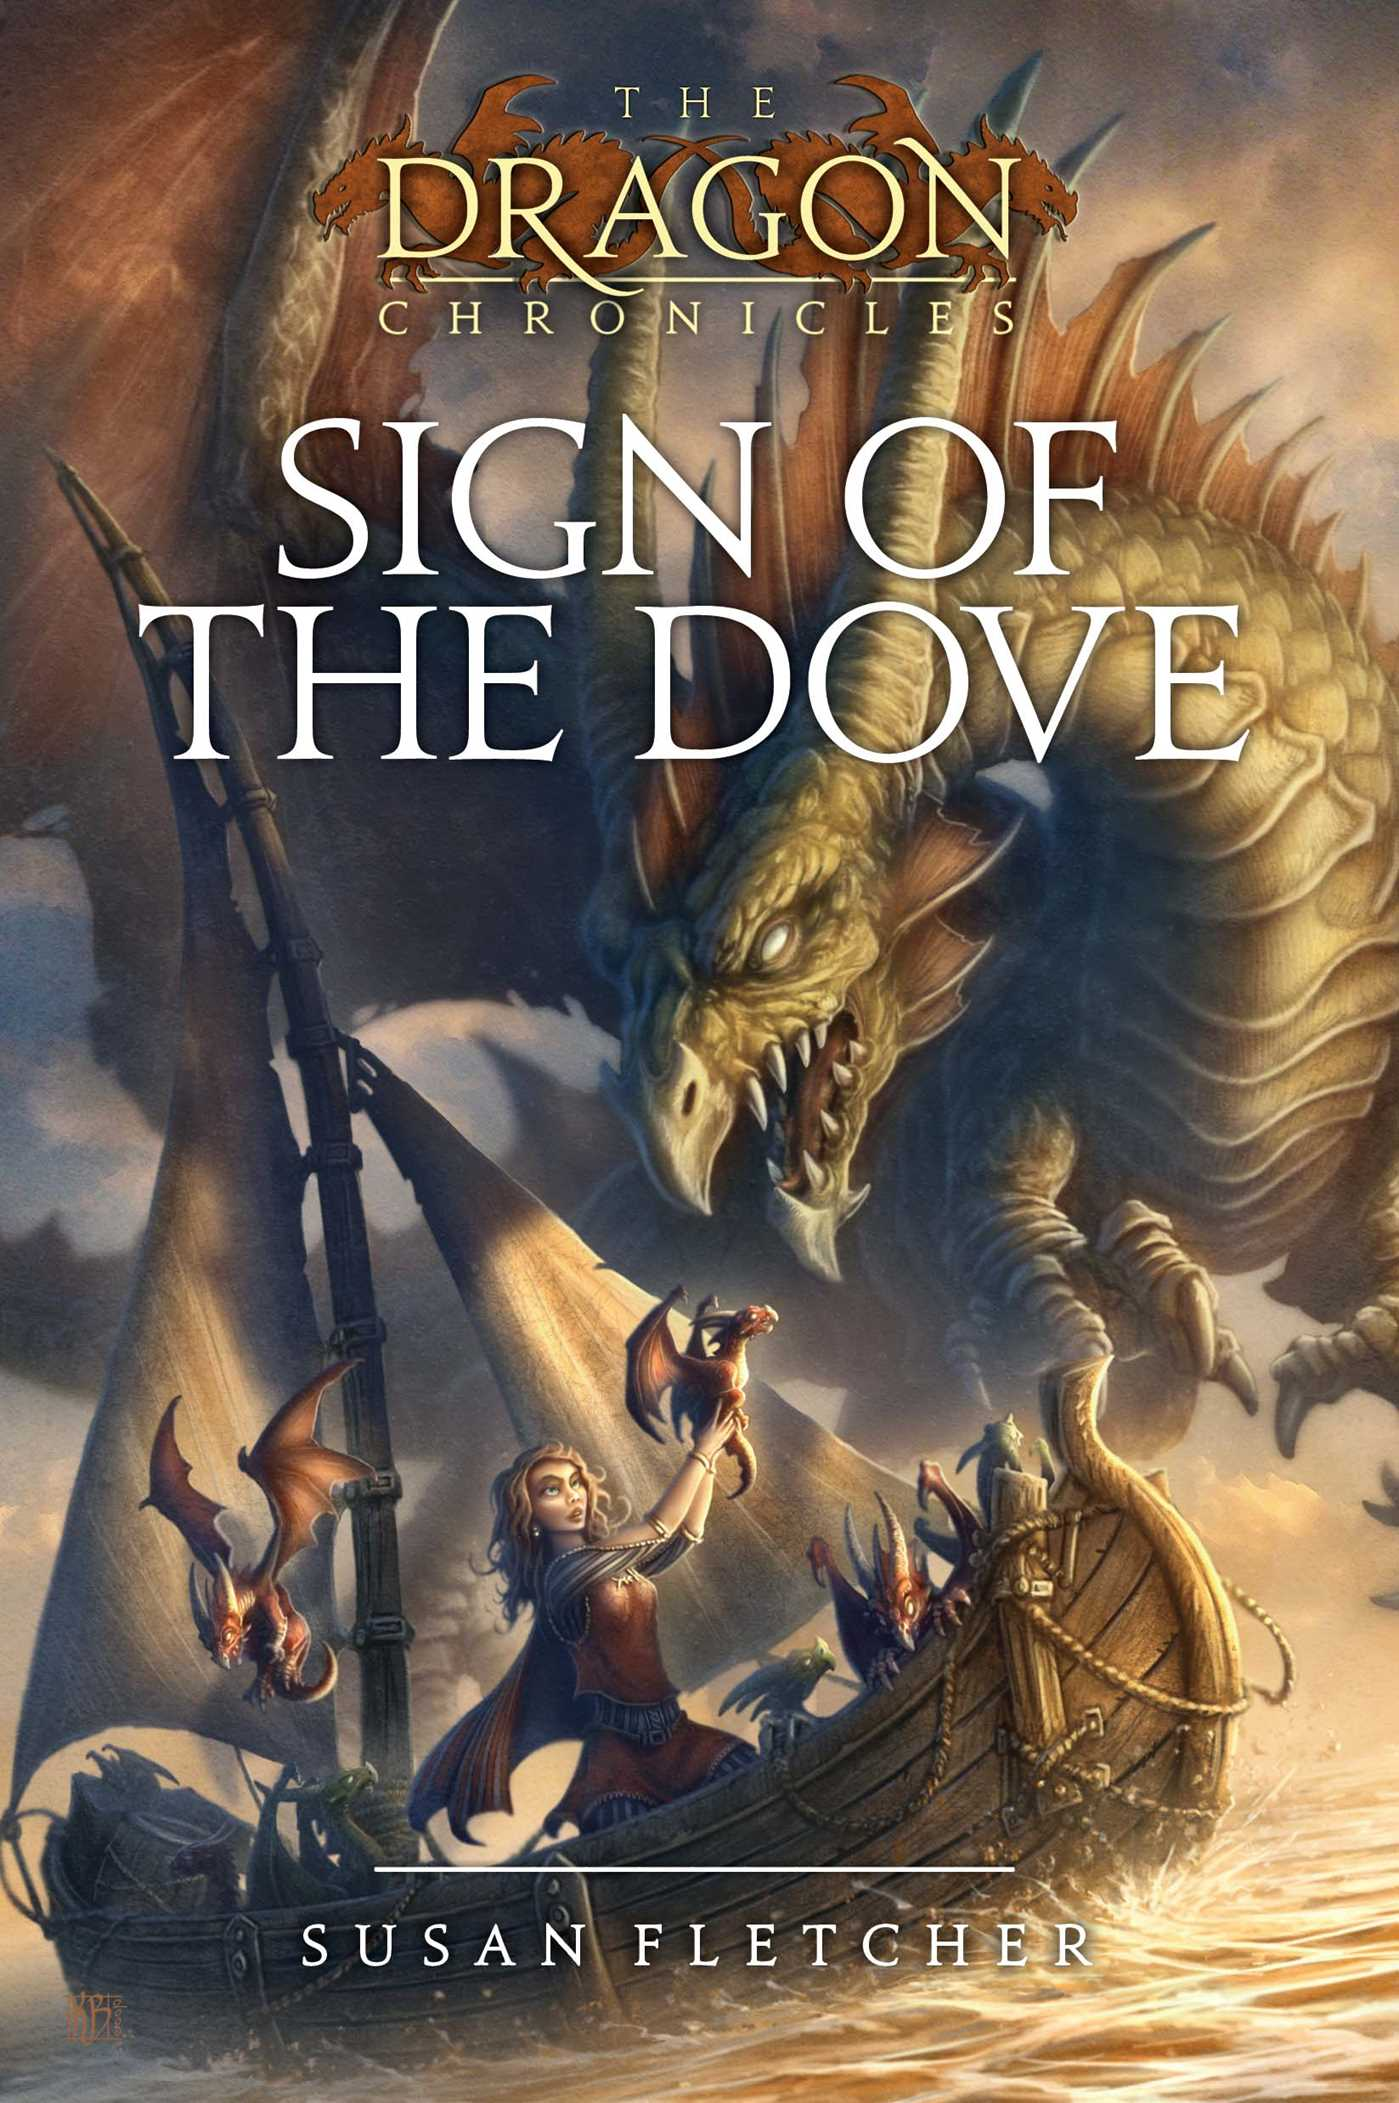 Sign-of-the-dove-9781442409736_hr